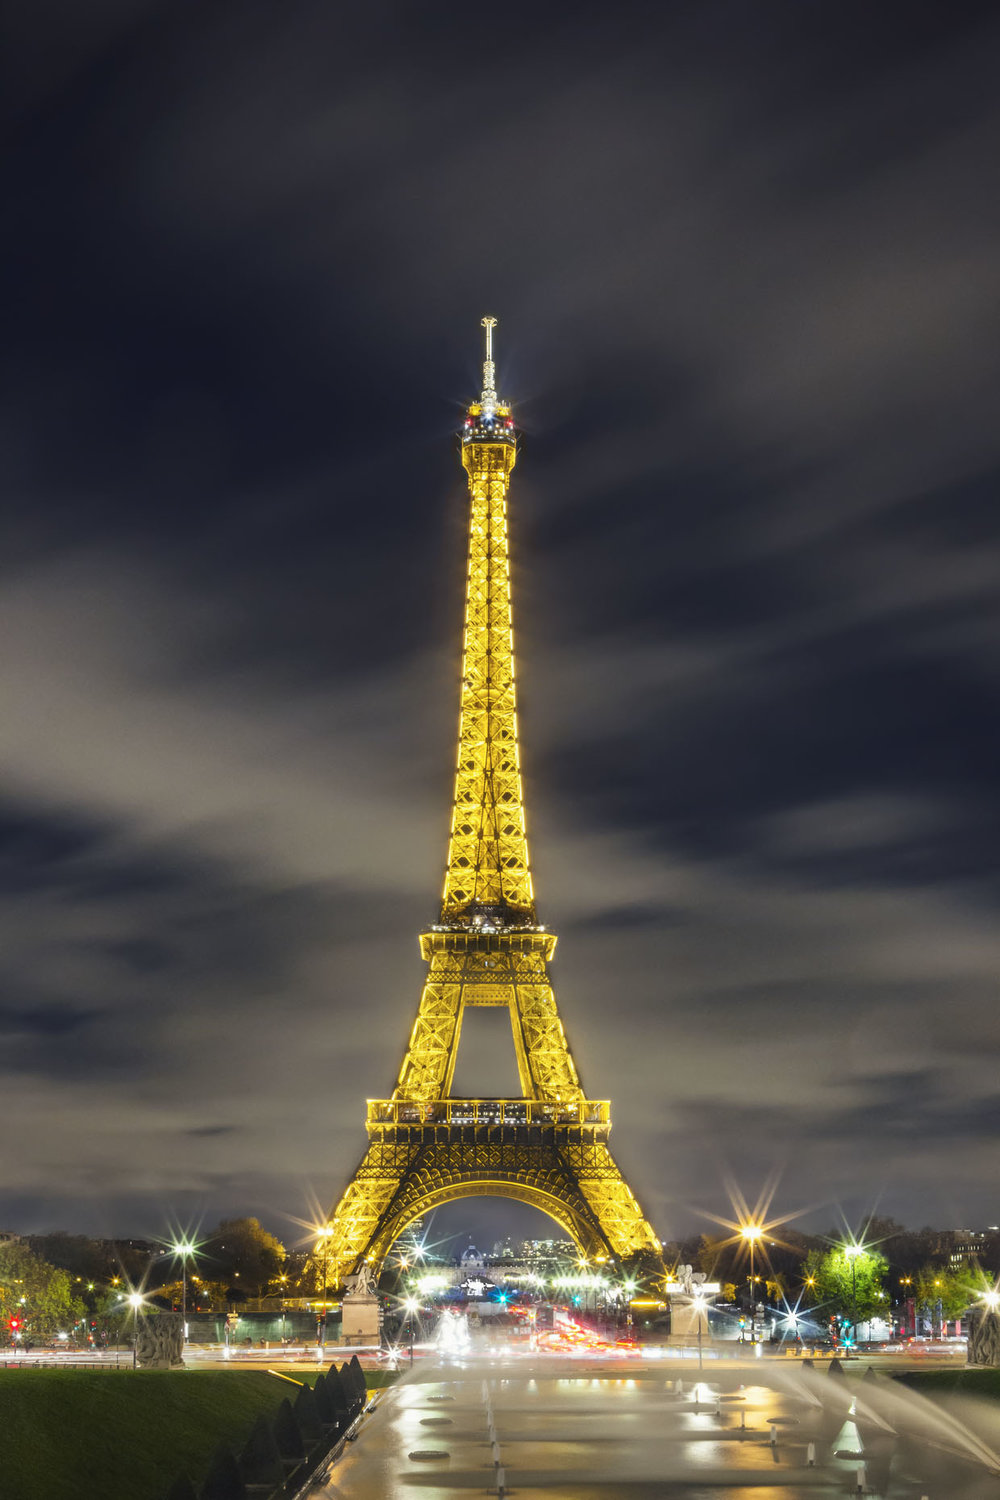 France_Paris_EiffelTowerTwilight_11_webuse.jpg